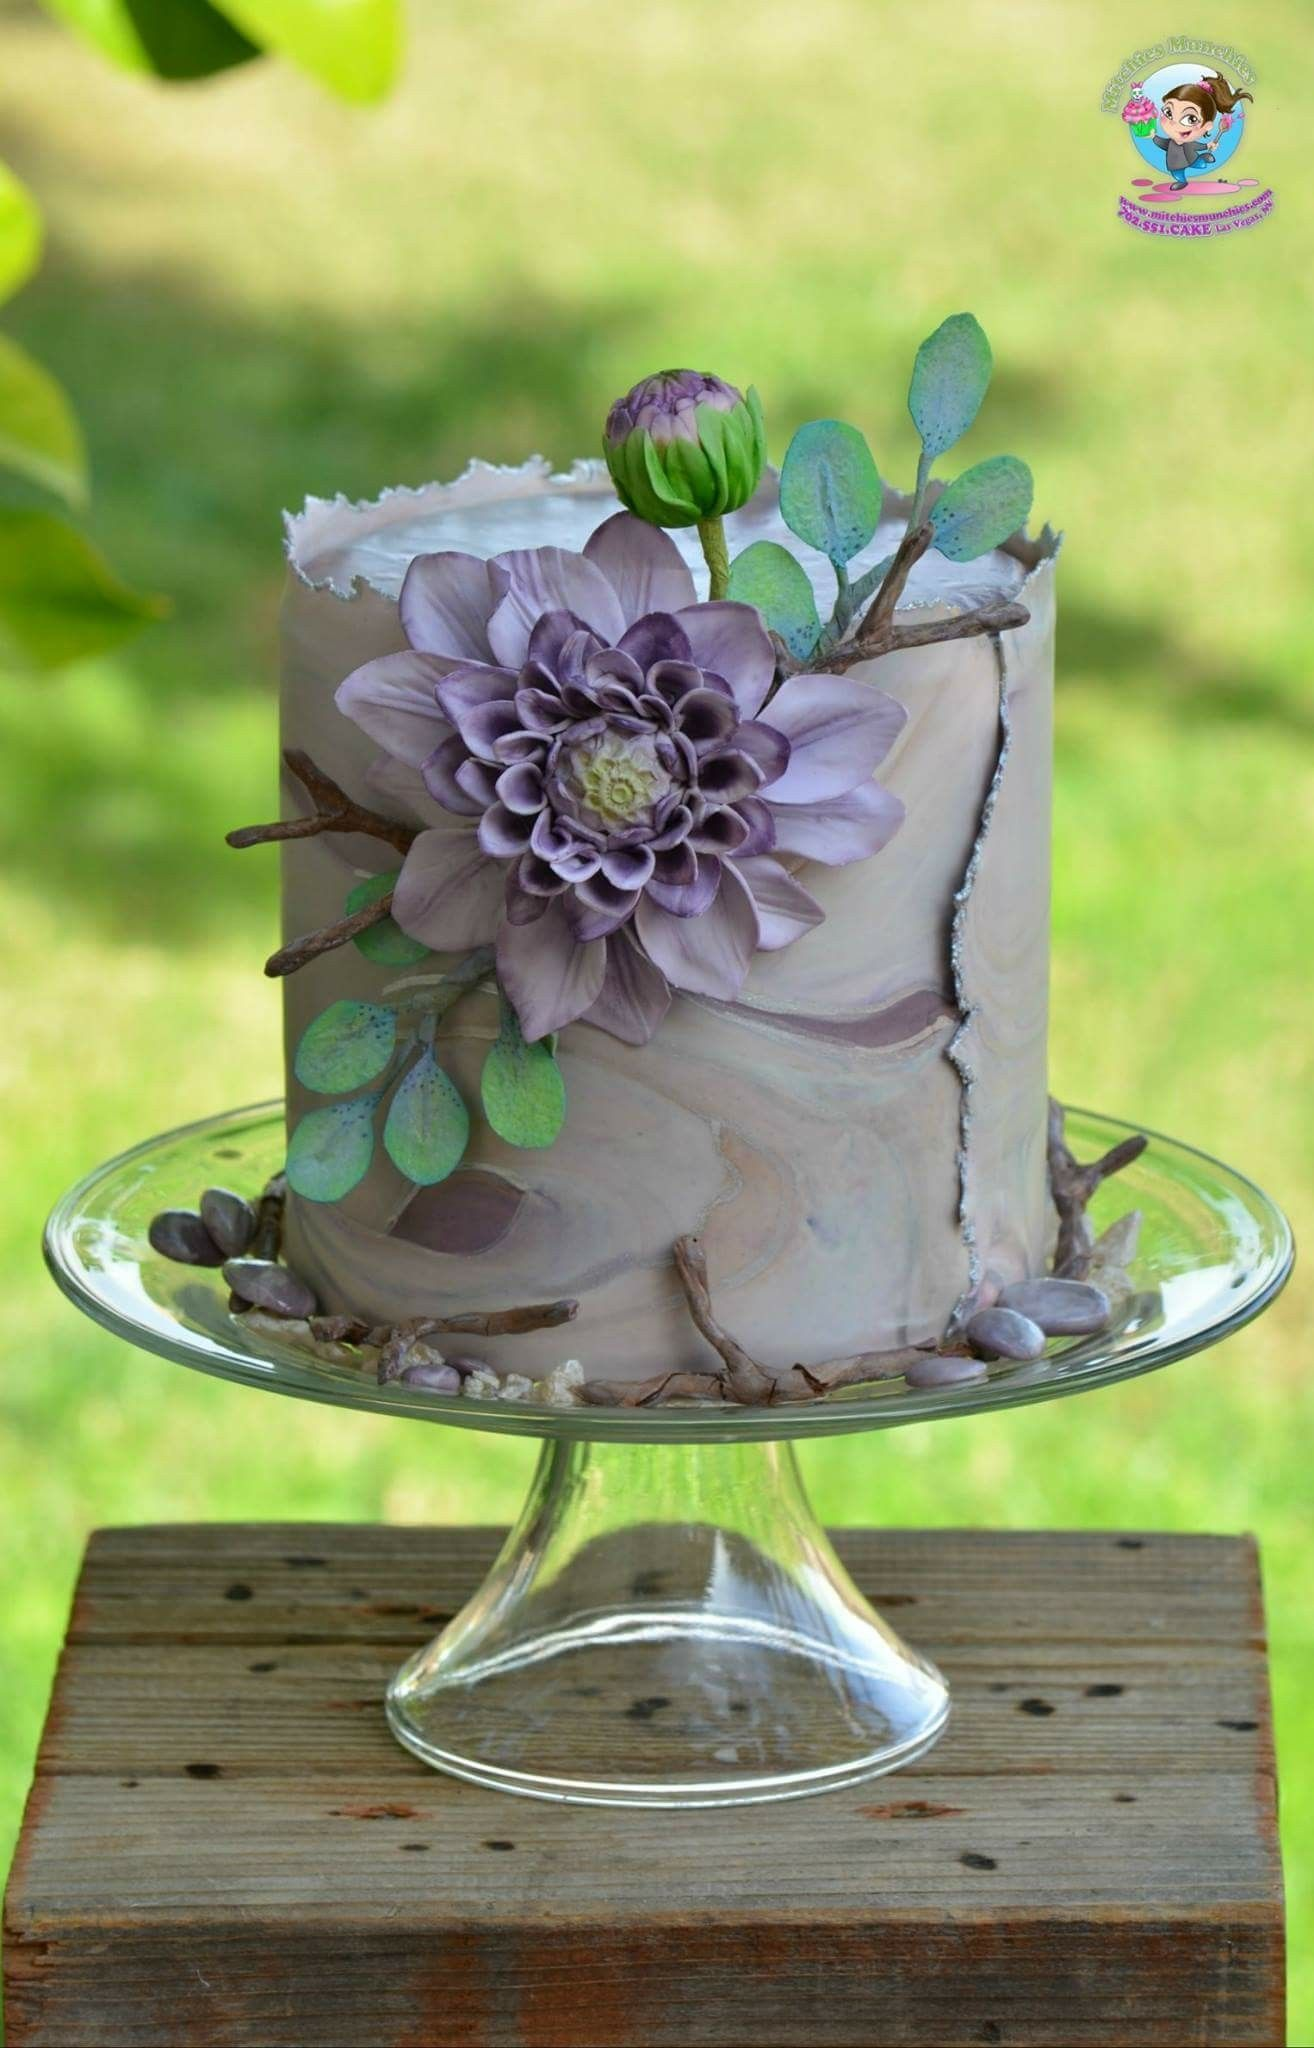 Pin by magda on cake art pinterest cake floral cake and amazing